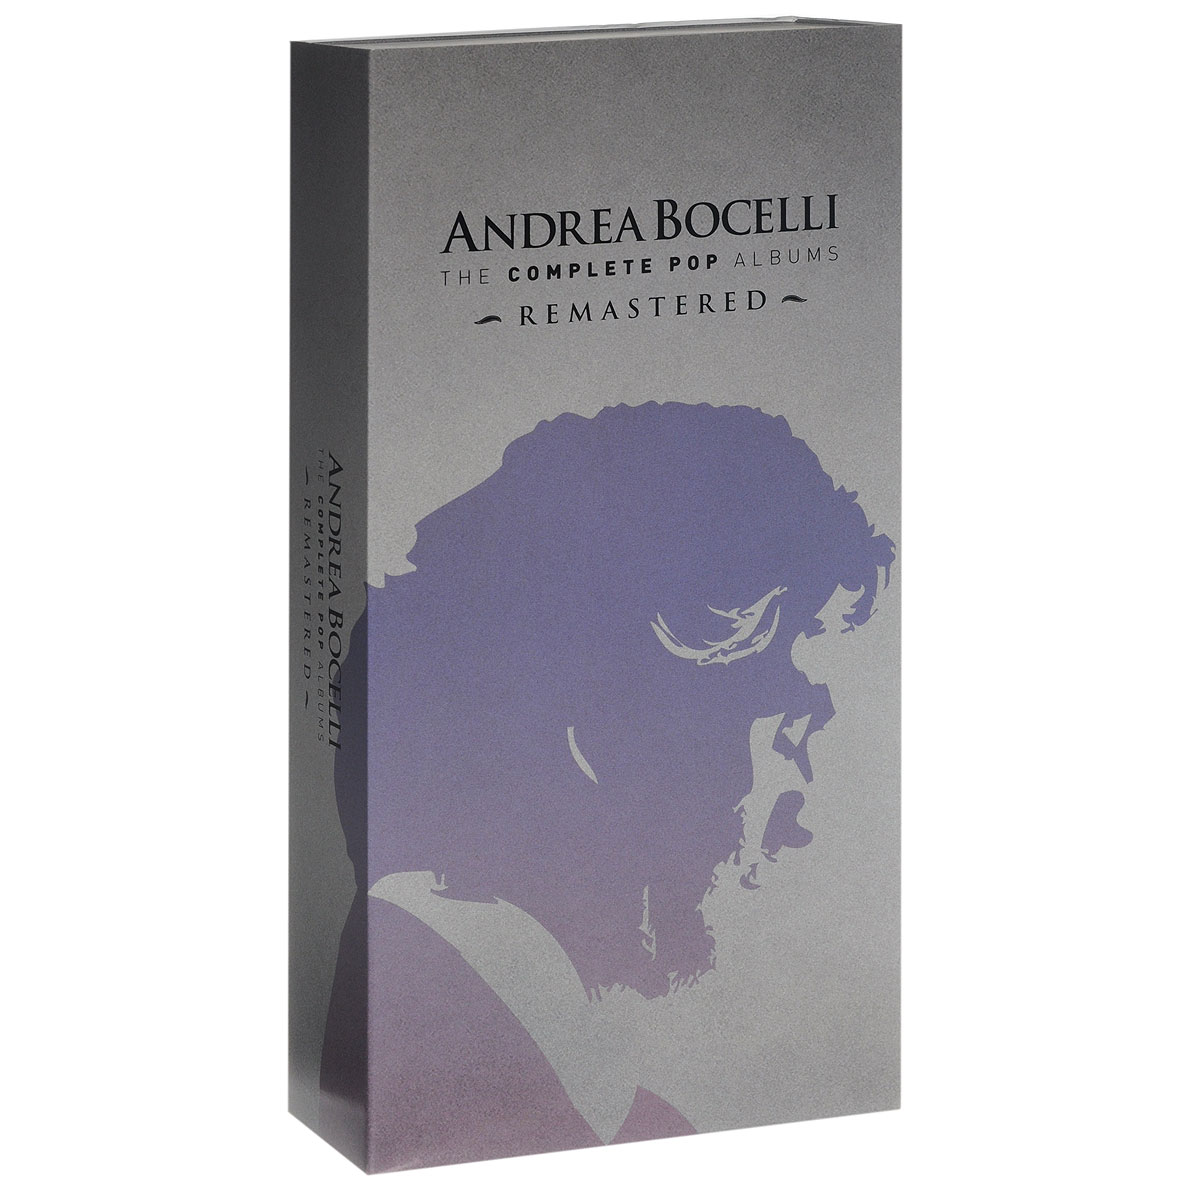 Андреа Бочелли Andrea Bocelli. The Complete Pop Albums (16 CD) андреа бочелли andrea bocelli the complete pop albums 16 cd